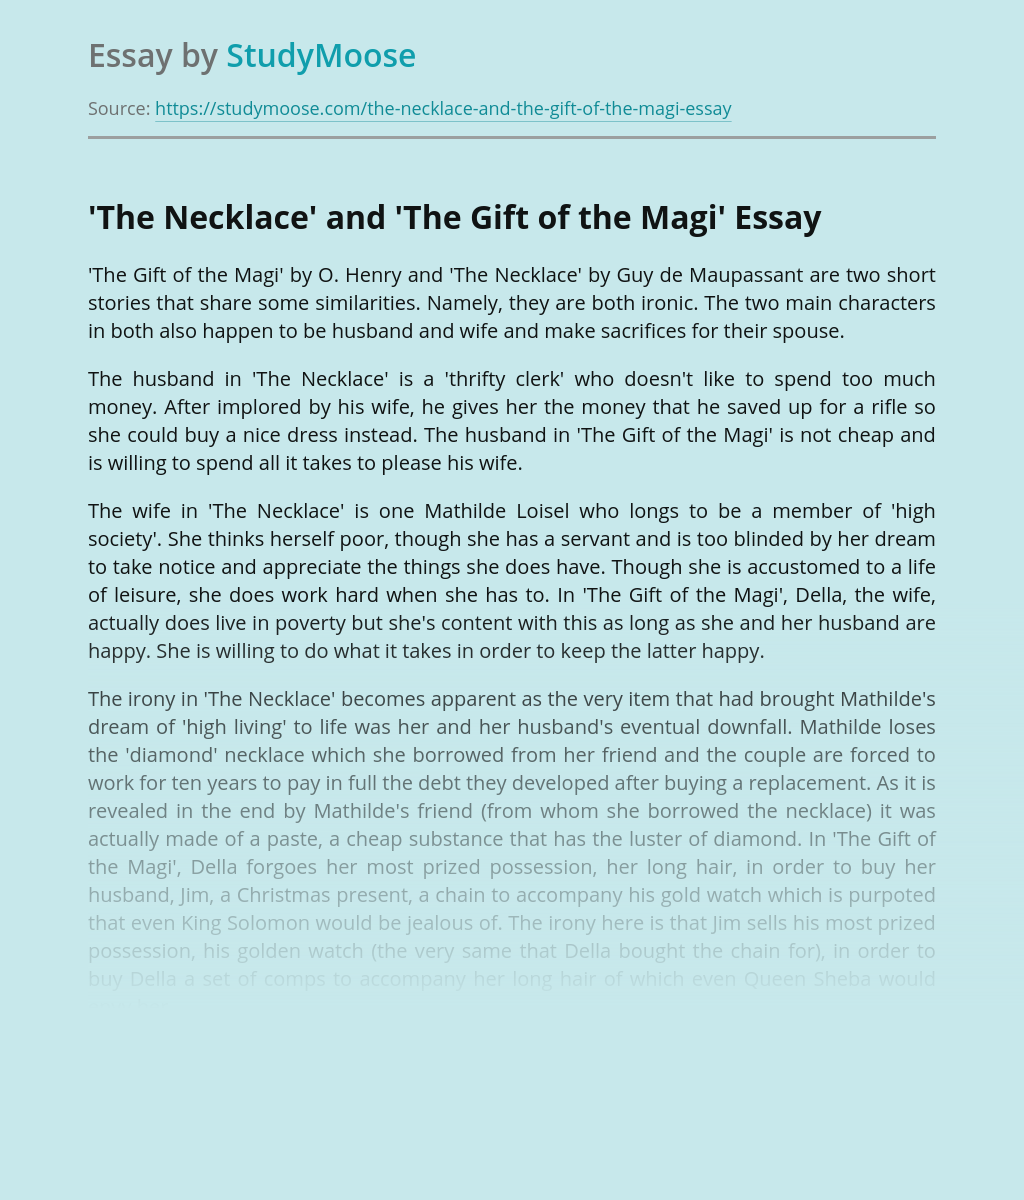 'The Necklace' and 'The Gift of the Magi'